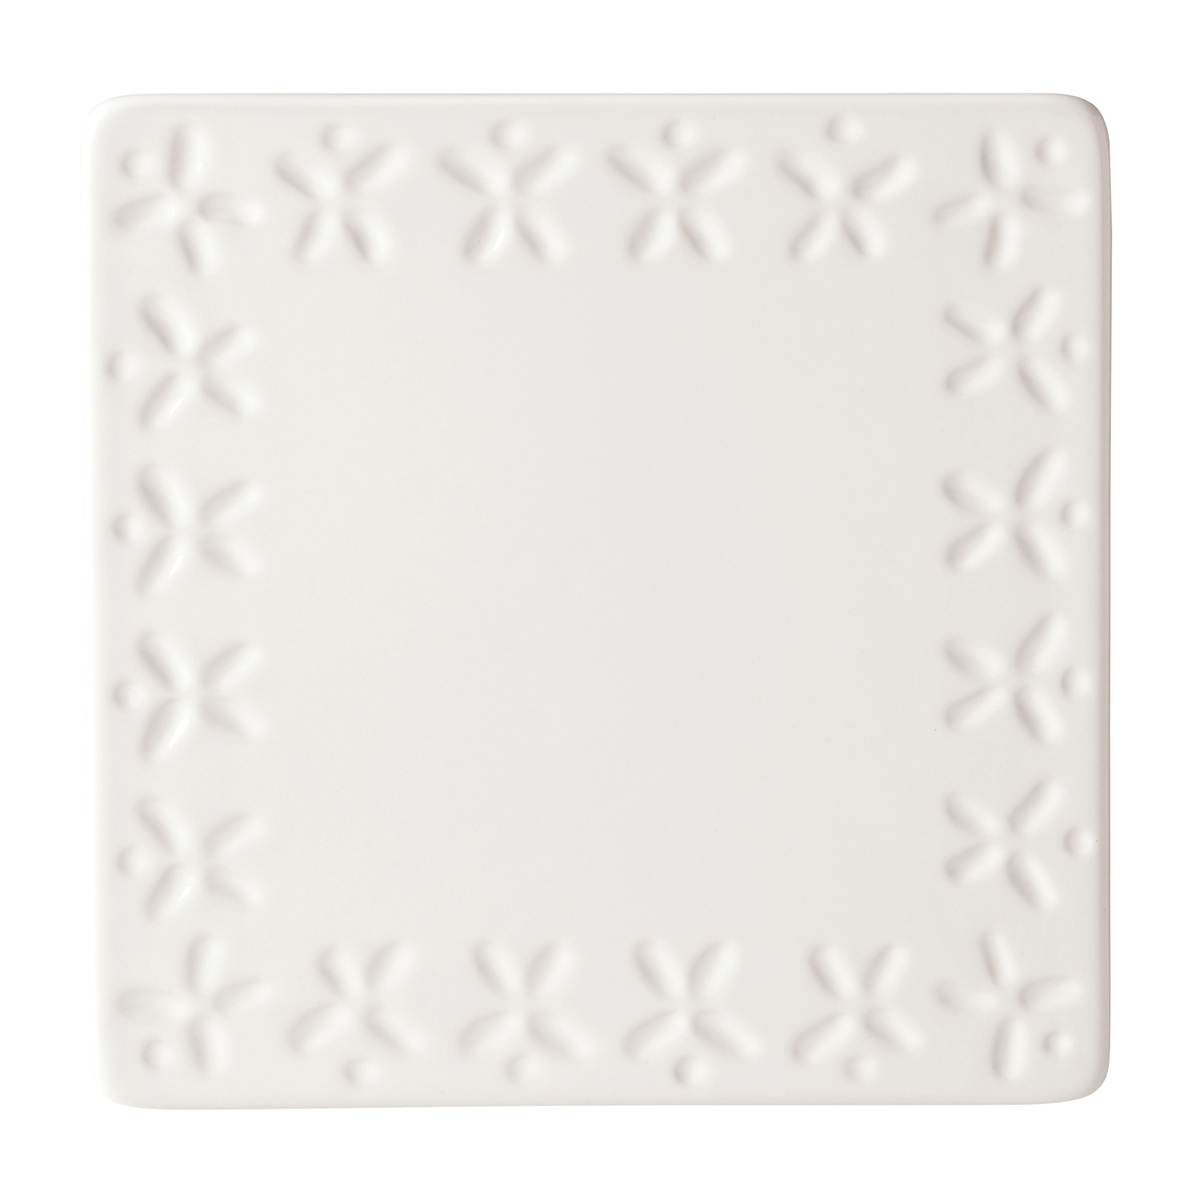 Kate Spade China by Lenox, Stoneware Willow Drive Cream Trivet, Square